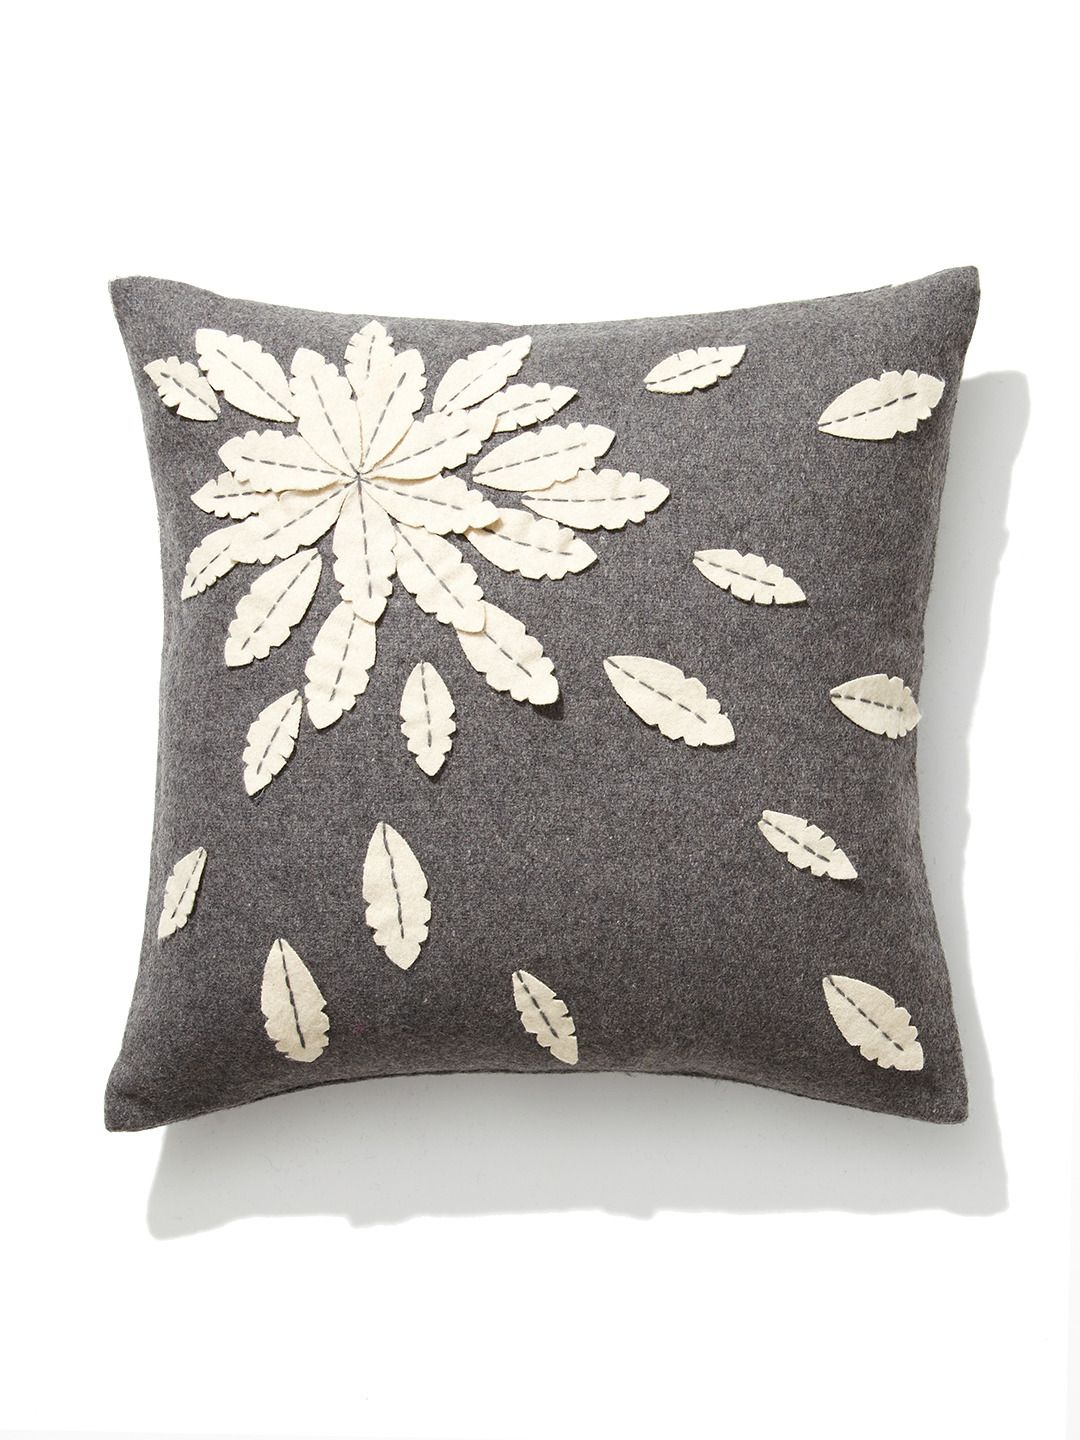 Felt Flower Applique Pillow By Design Accents At Gilt Family Room